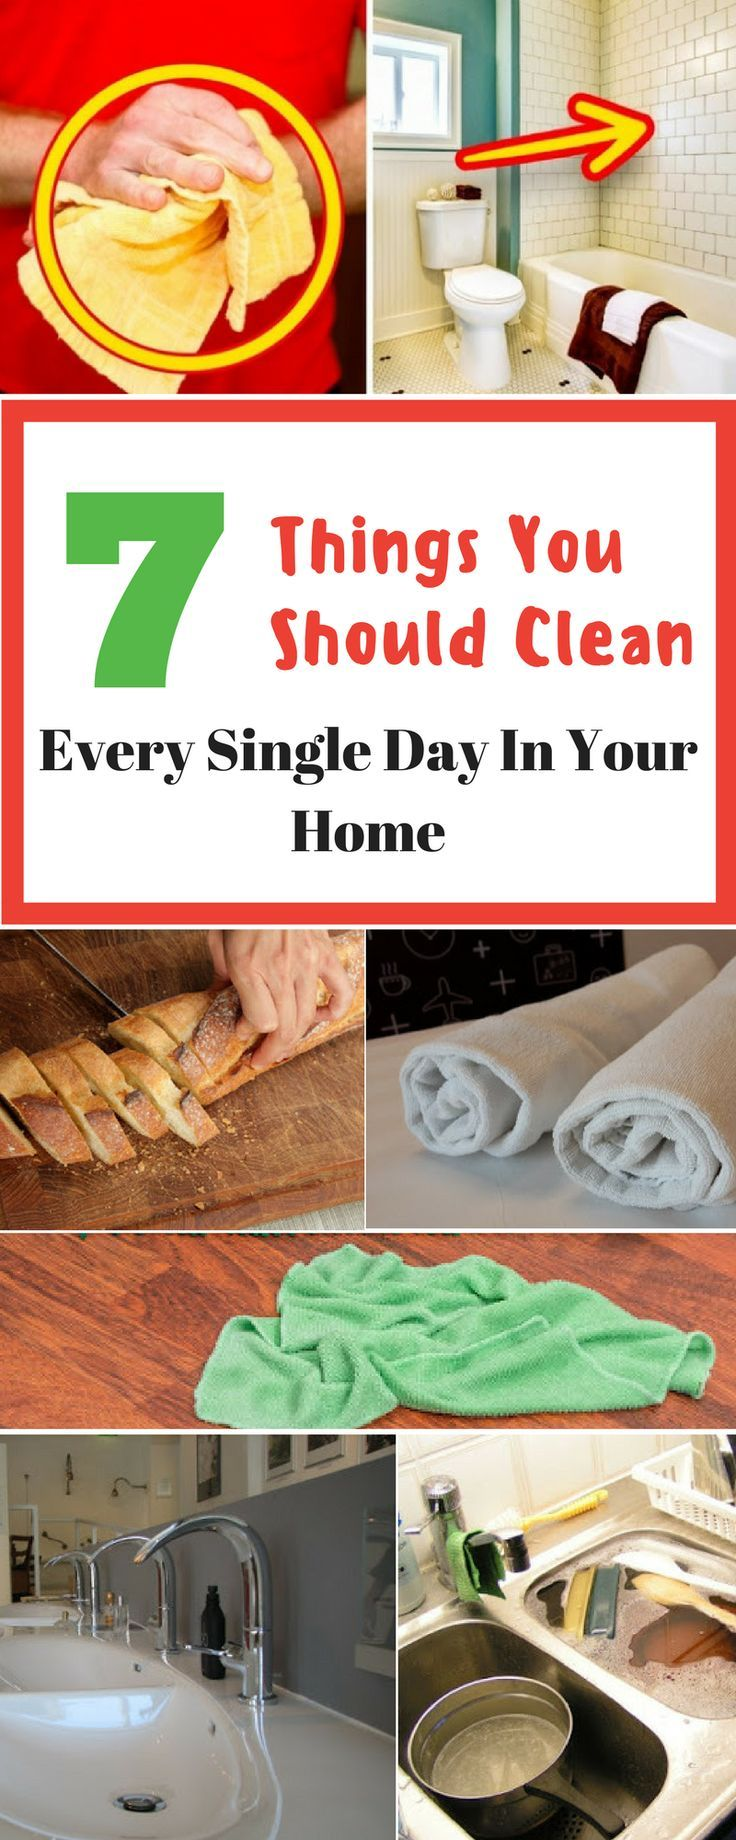 7 Things You Should Clean Every Single Day